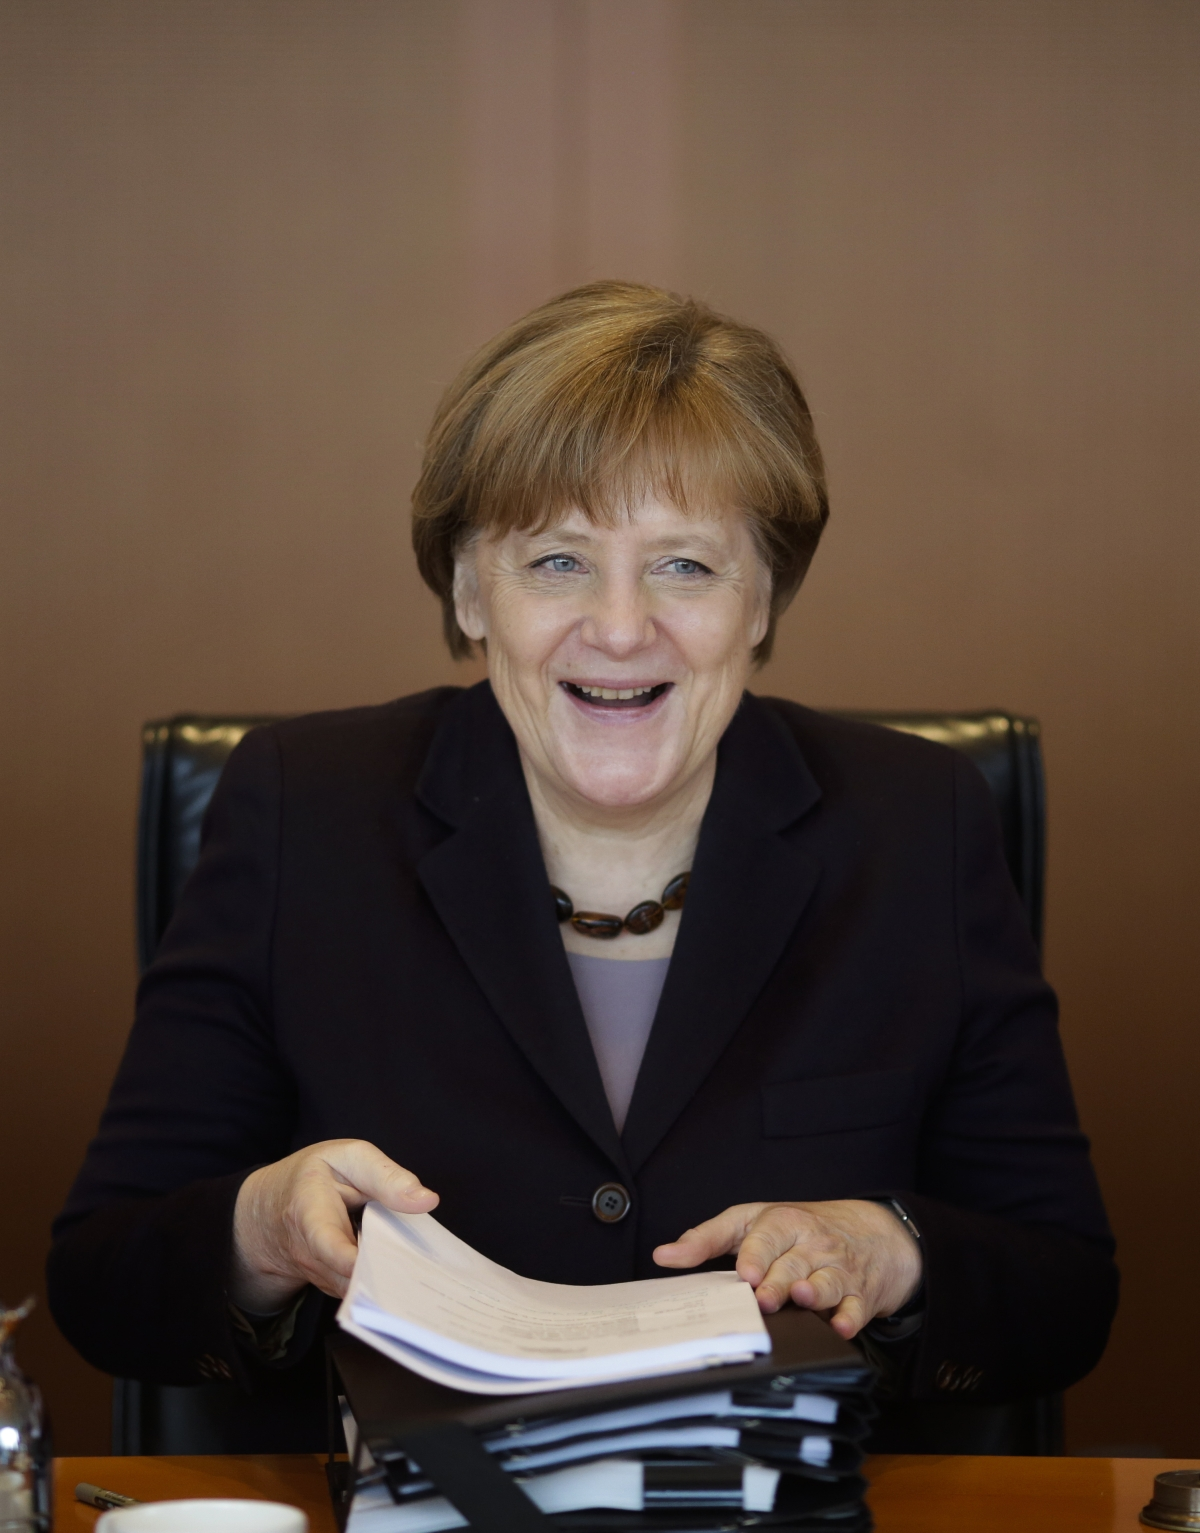 The German Chancellor has internalised a tendency to always treat food as a scarce commodity. (Photo: AP Exchange)